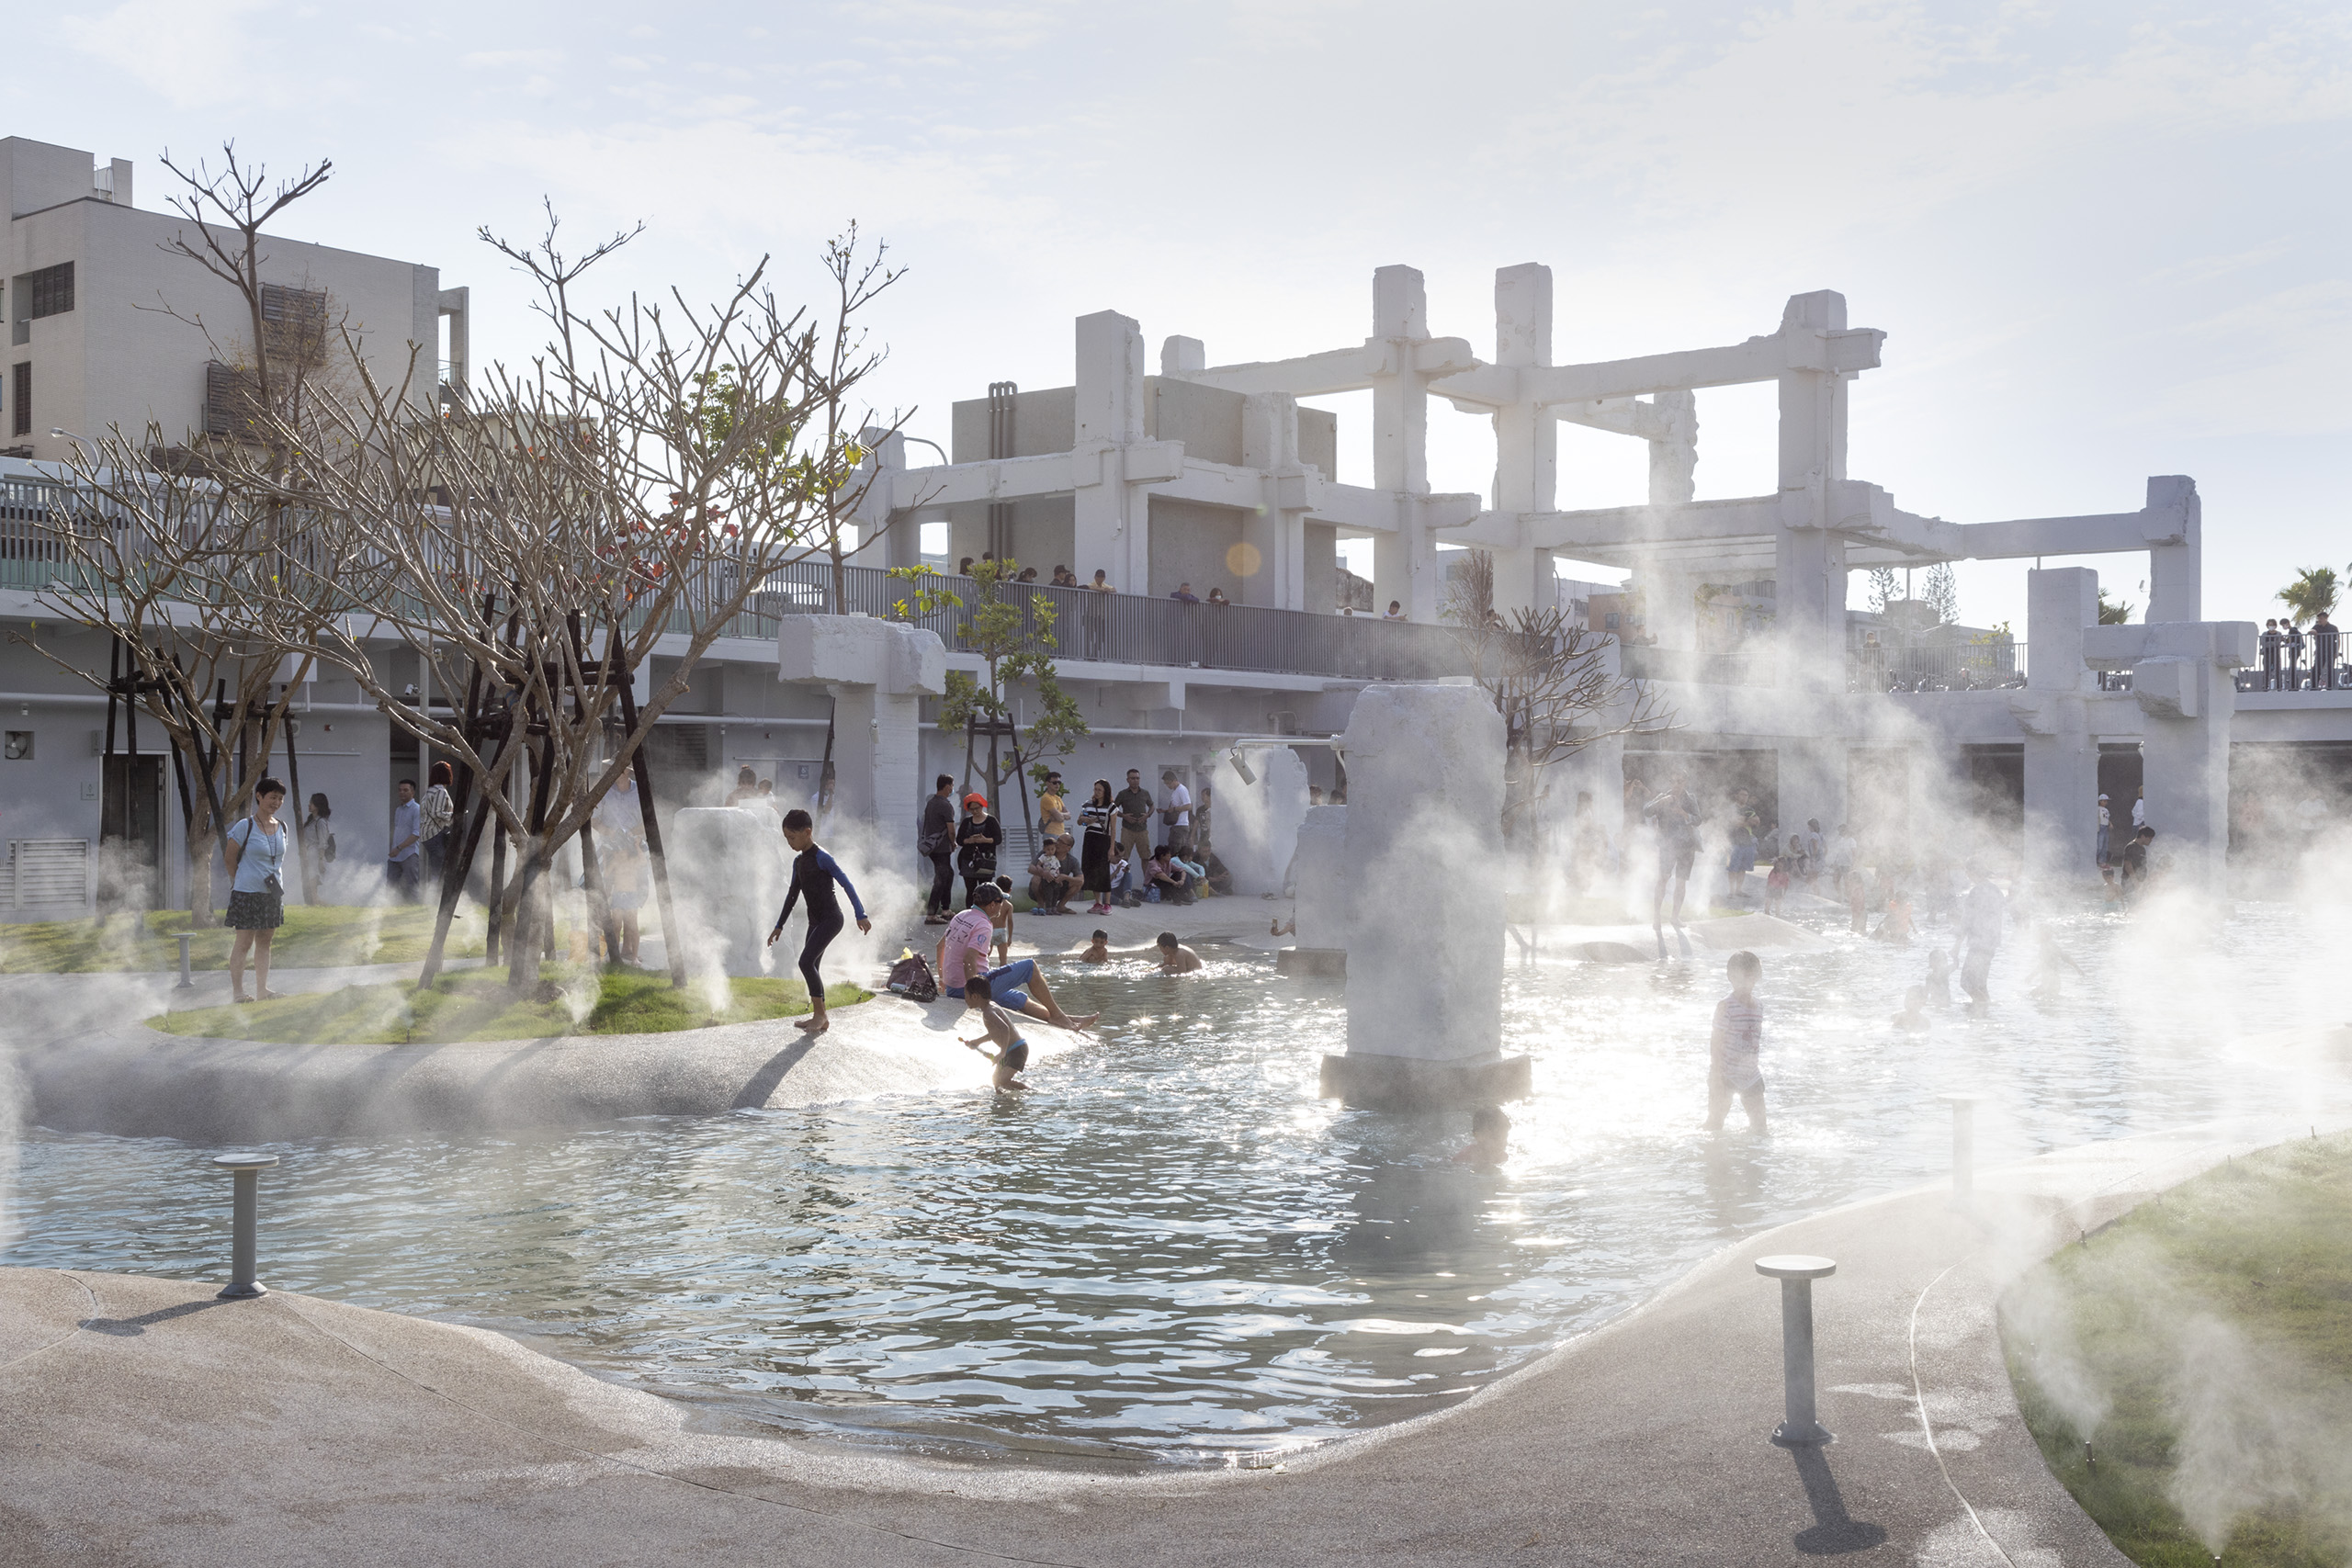 Children playing in wading pool with beamed structures in the distance.